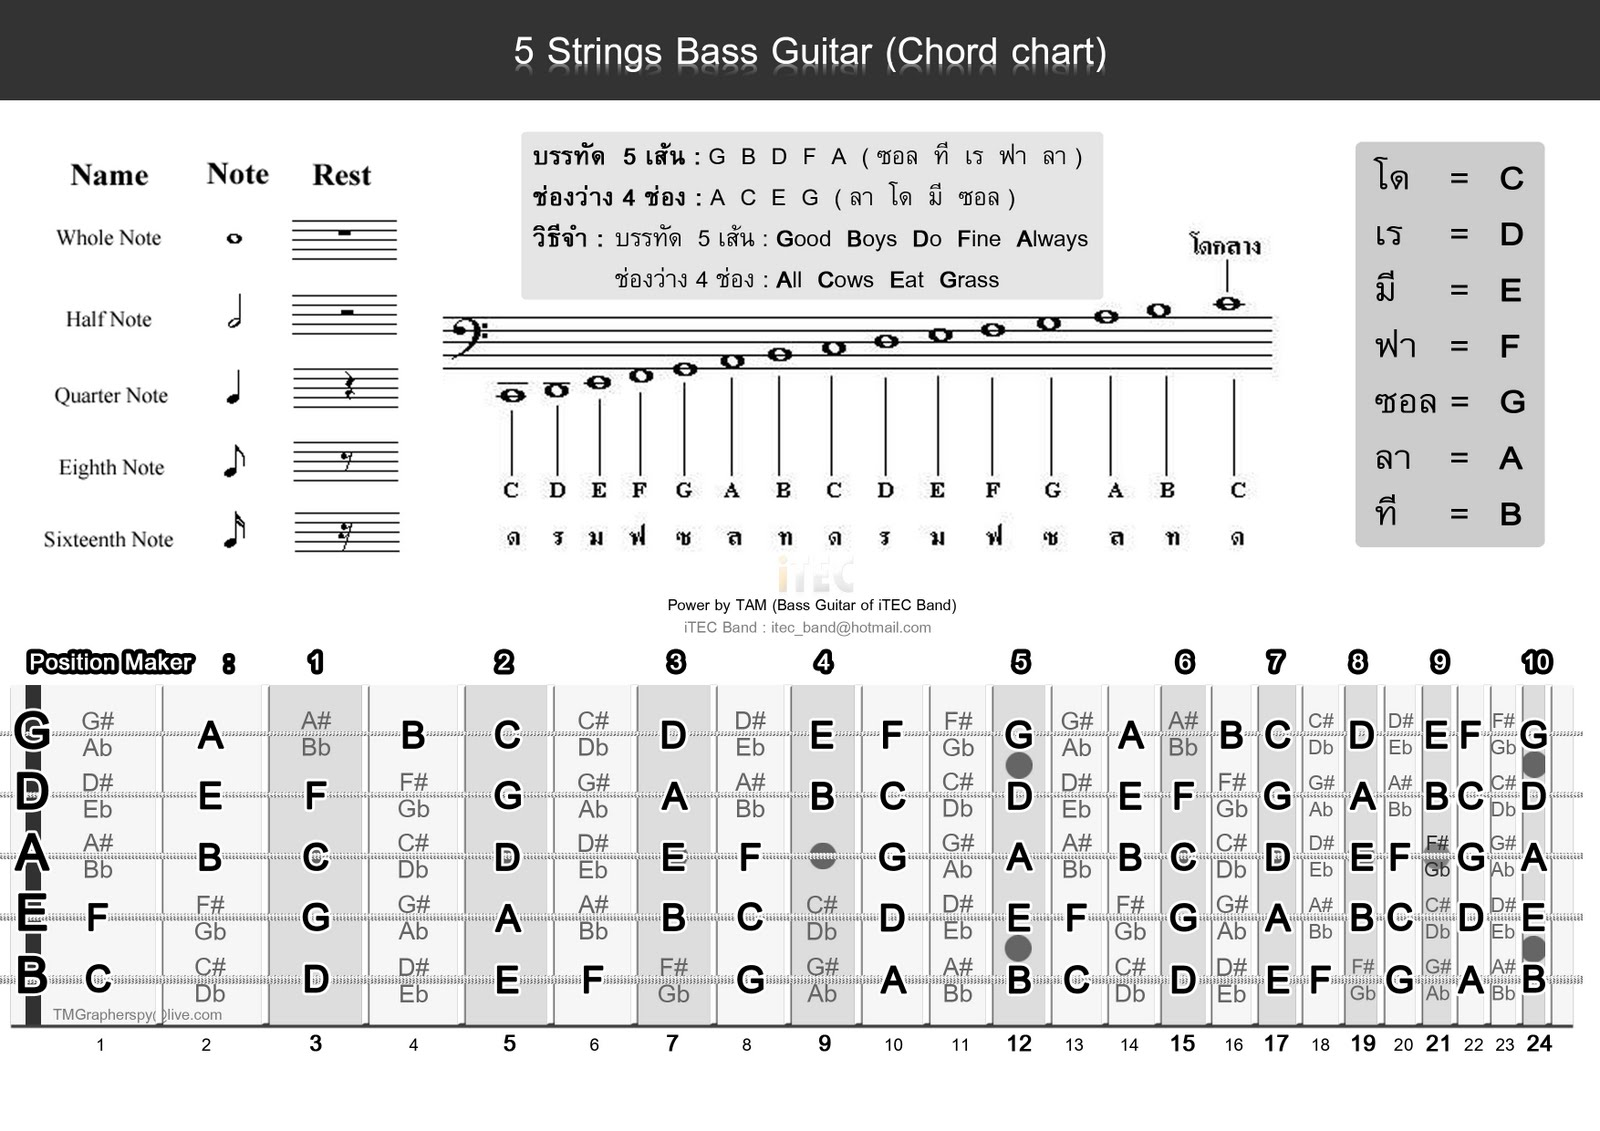 Gsr200 wiring diagram gio series ibanez forum readingrat similiar 5 string bass fretboard diagram keywords wiring diagram pooptronica Images